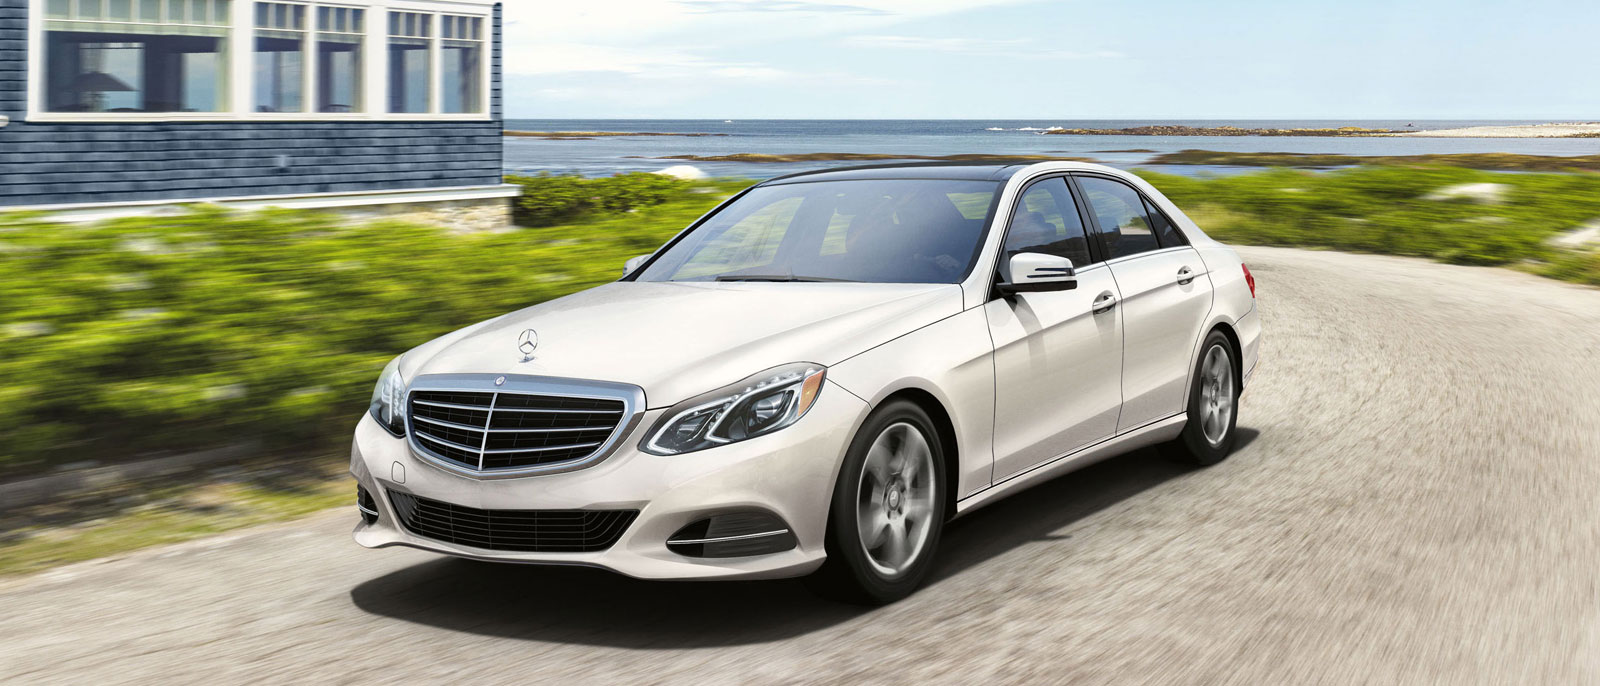 The 2016 mercedes benz e350 4matic at rbm of alpharetta for Mercedes benz sales jobs